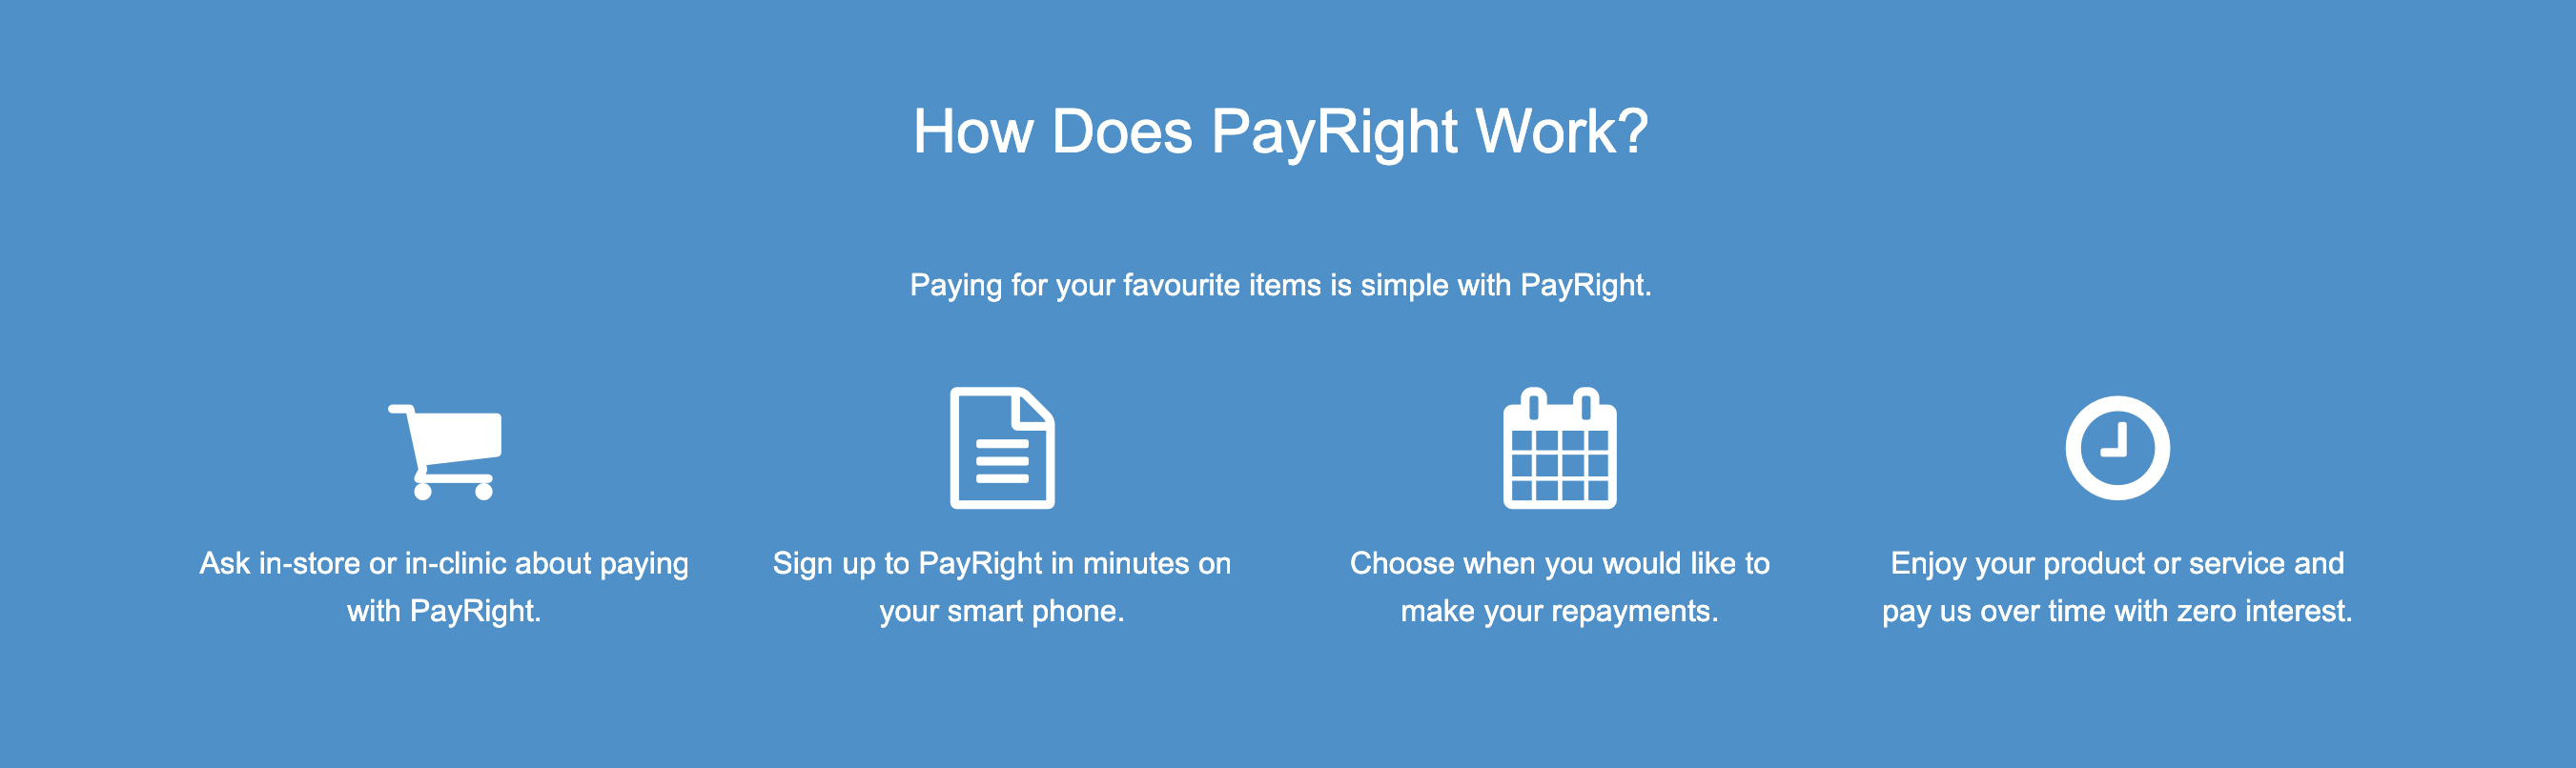 How Does PayRight Work?